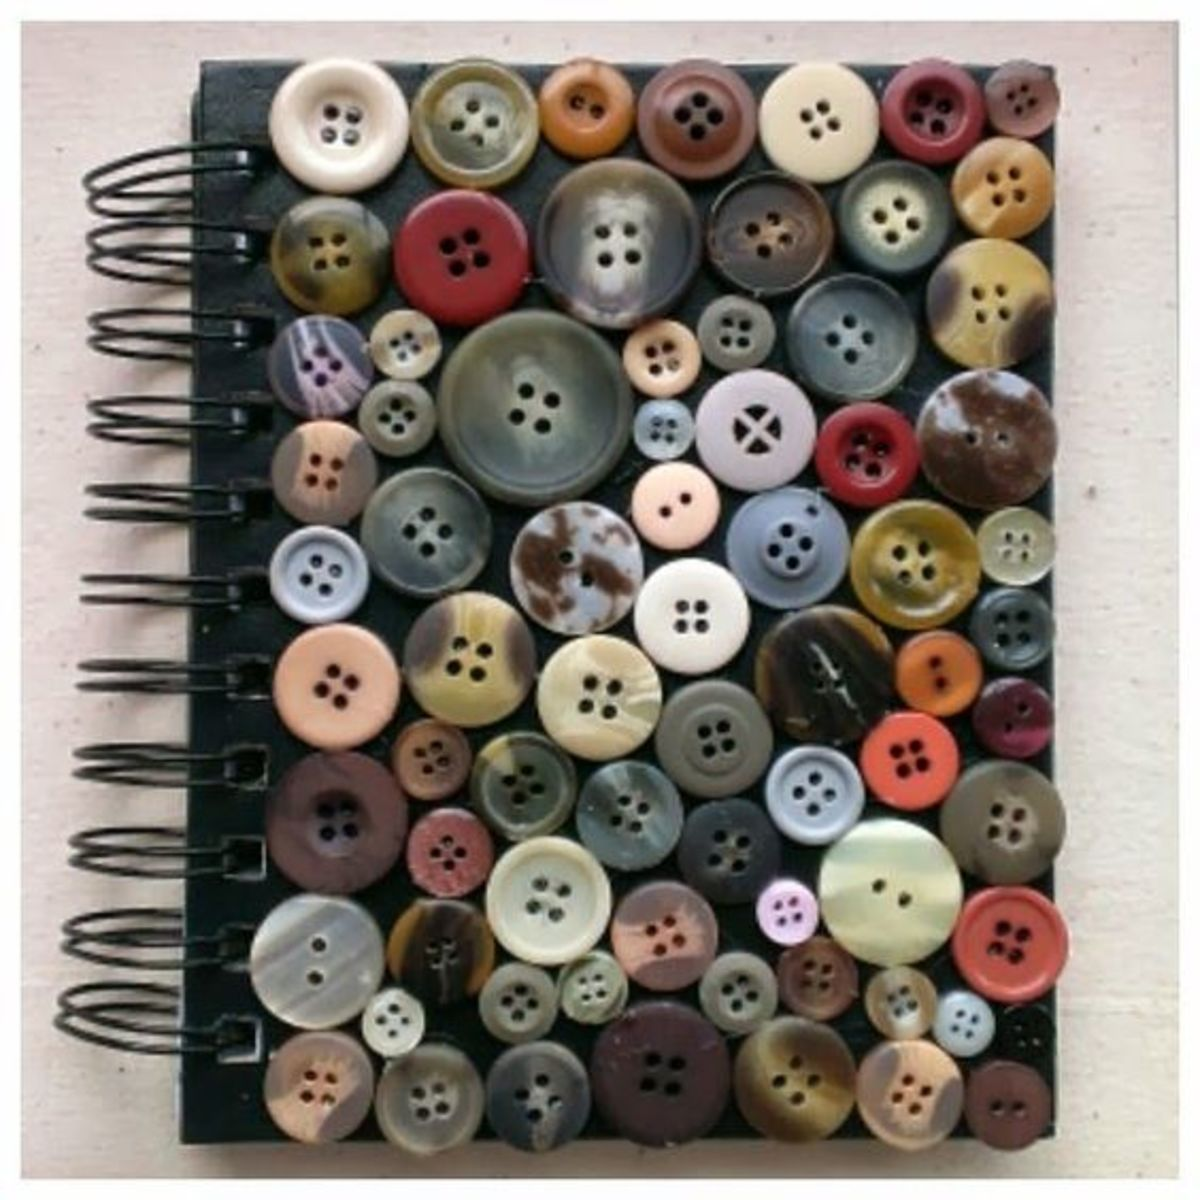 Just some strong tacky glue and some buttons laid out carefully makes this journal cover shine